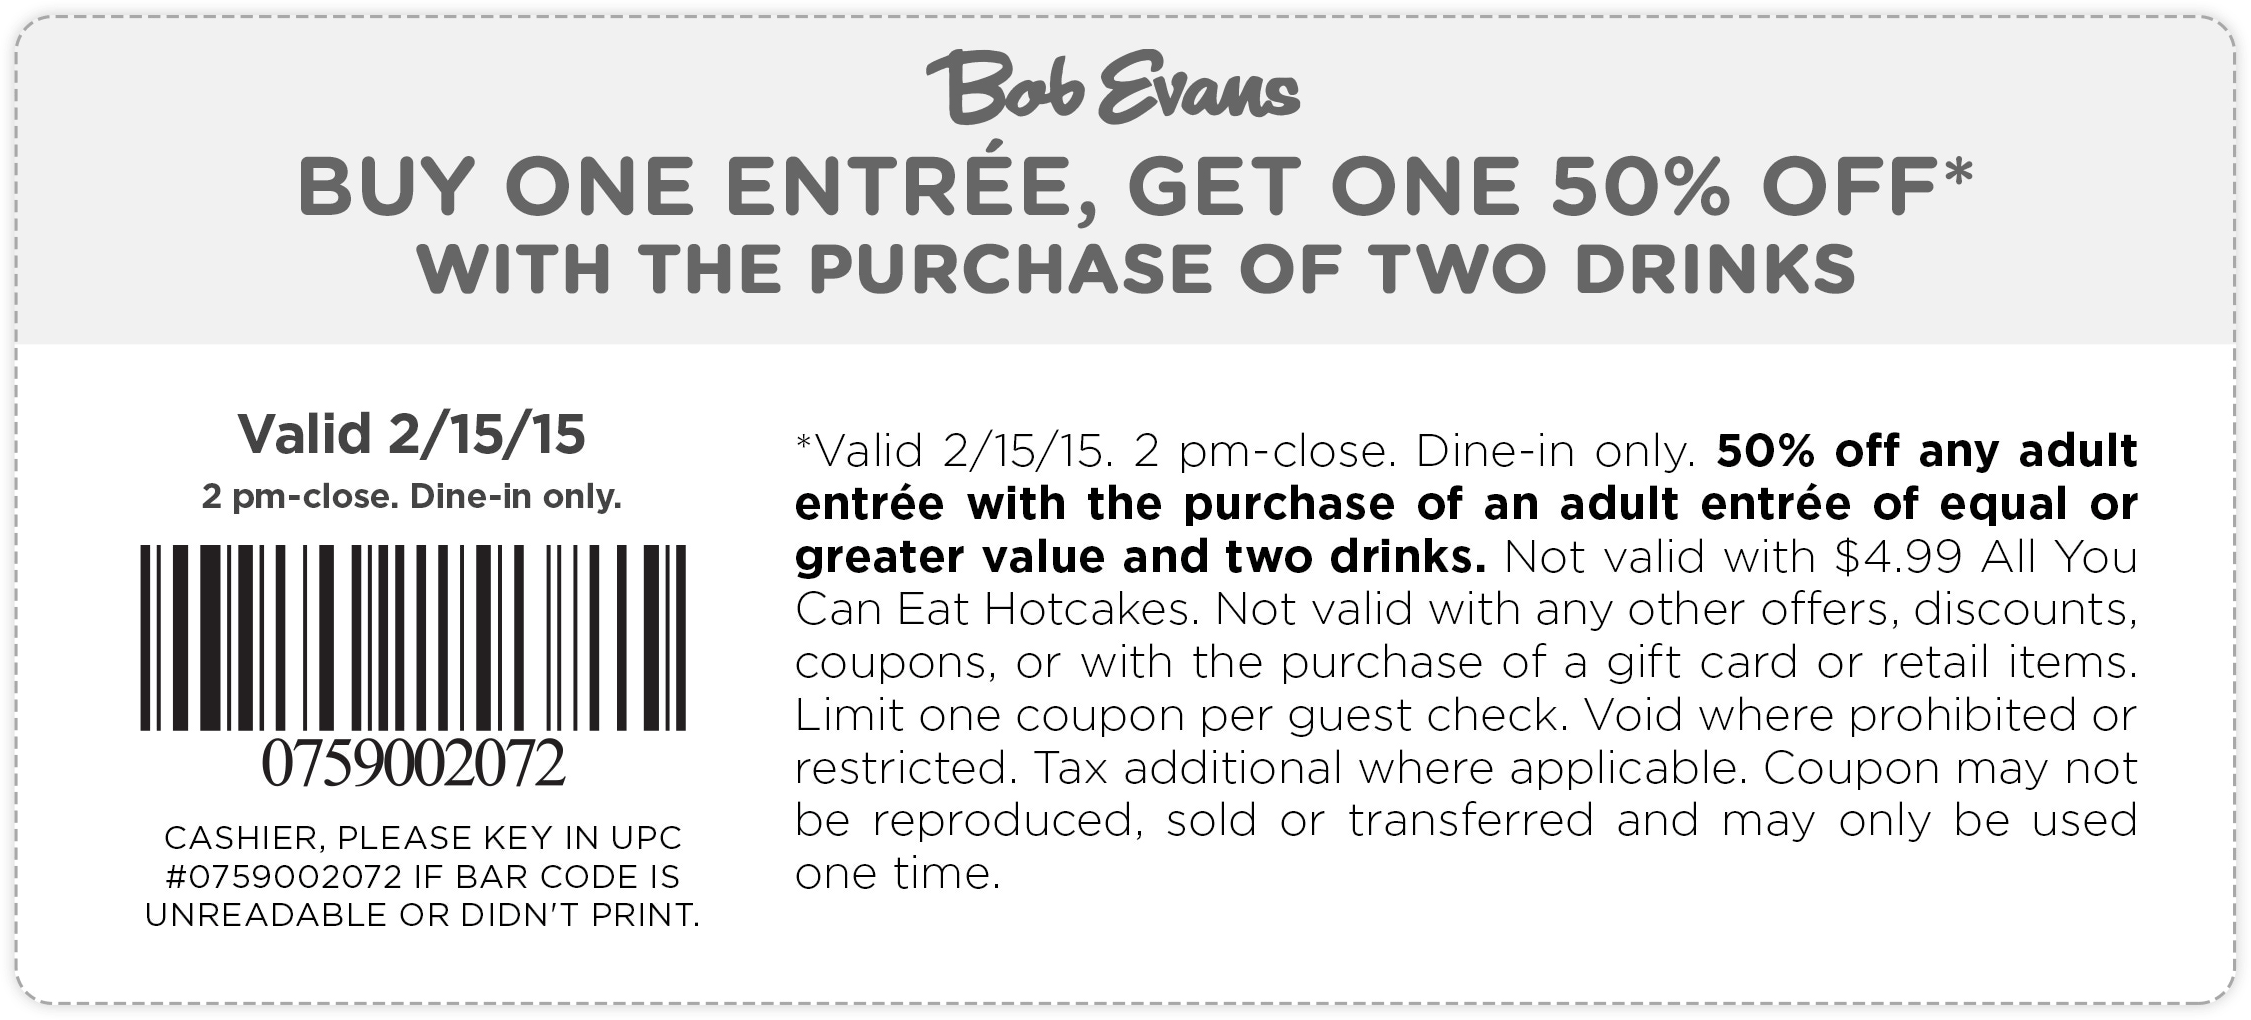 Bob Evans Coupon September 2018 Second entree 50% off today at Bob Evans